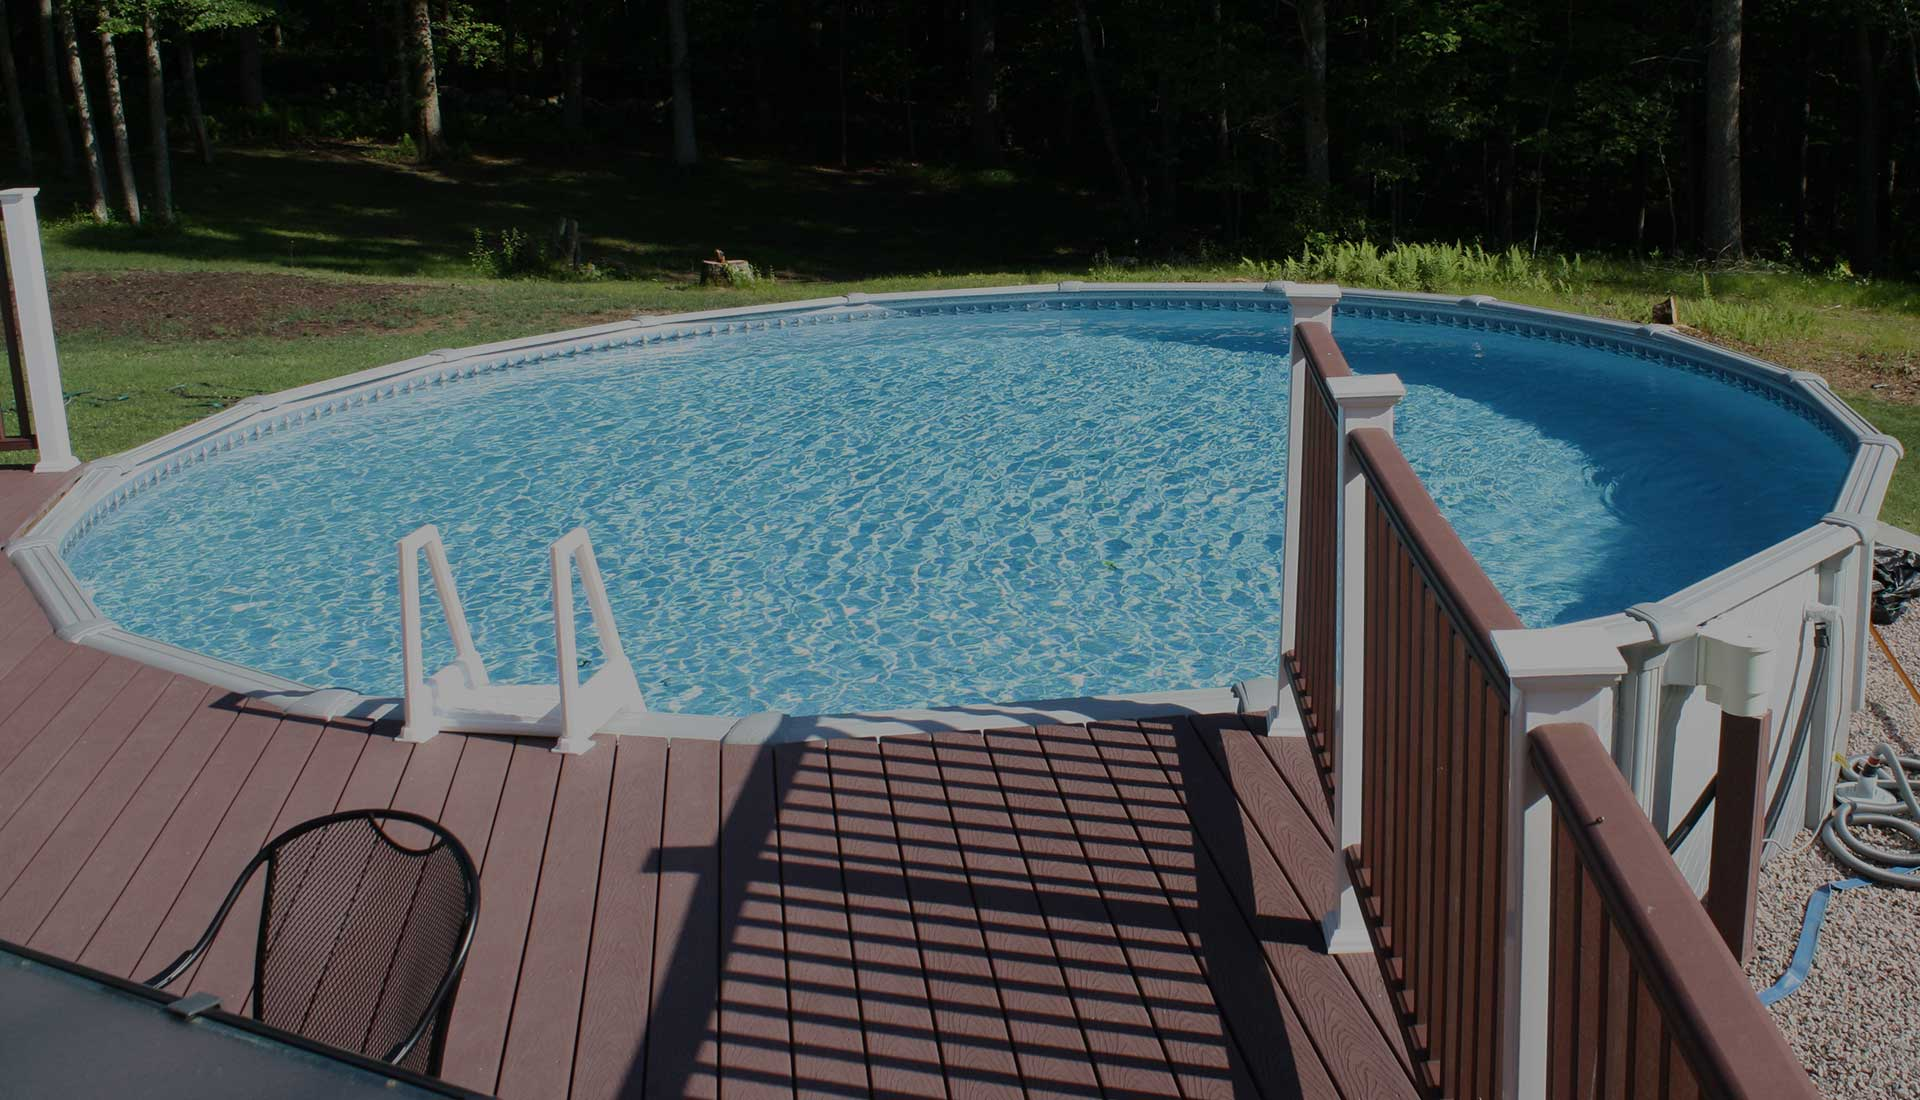 Jacuzzi Pool In Ground Charlotte Hot Tubs And Swimming Pools Charlotte Hot Tubs And